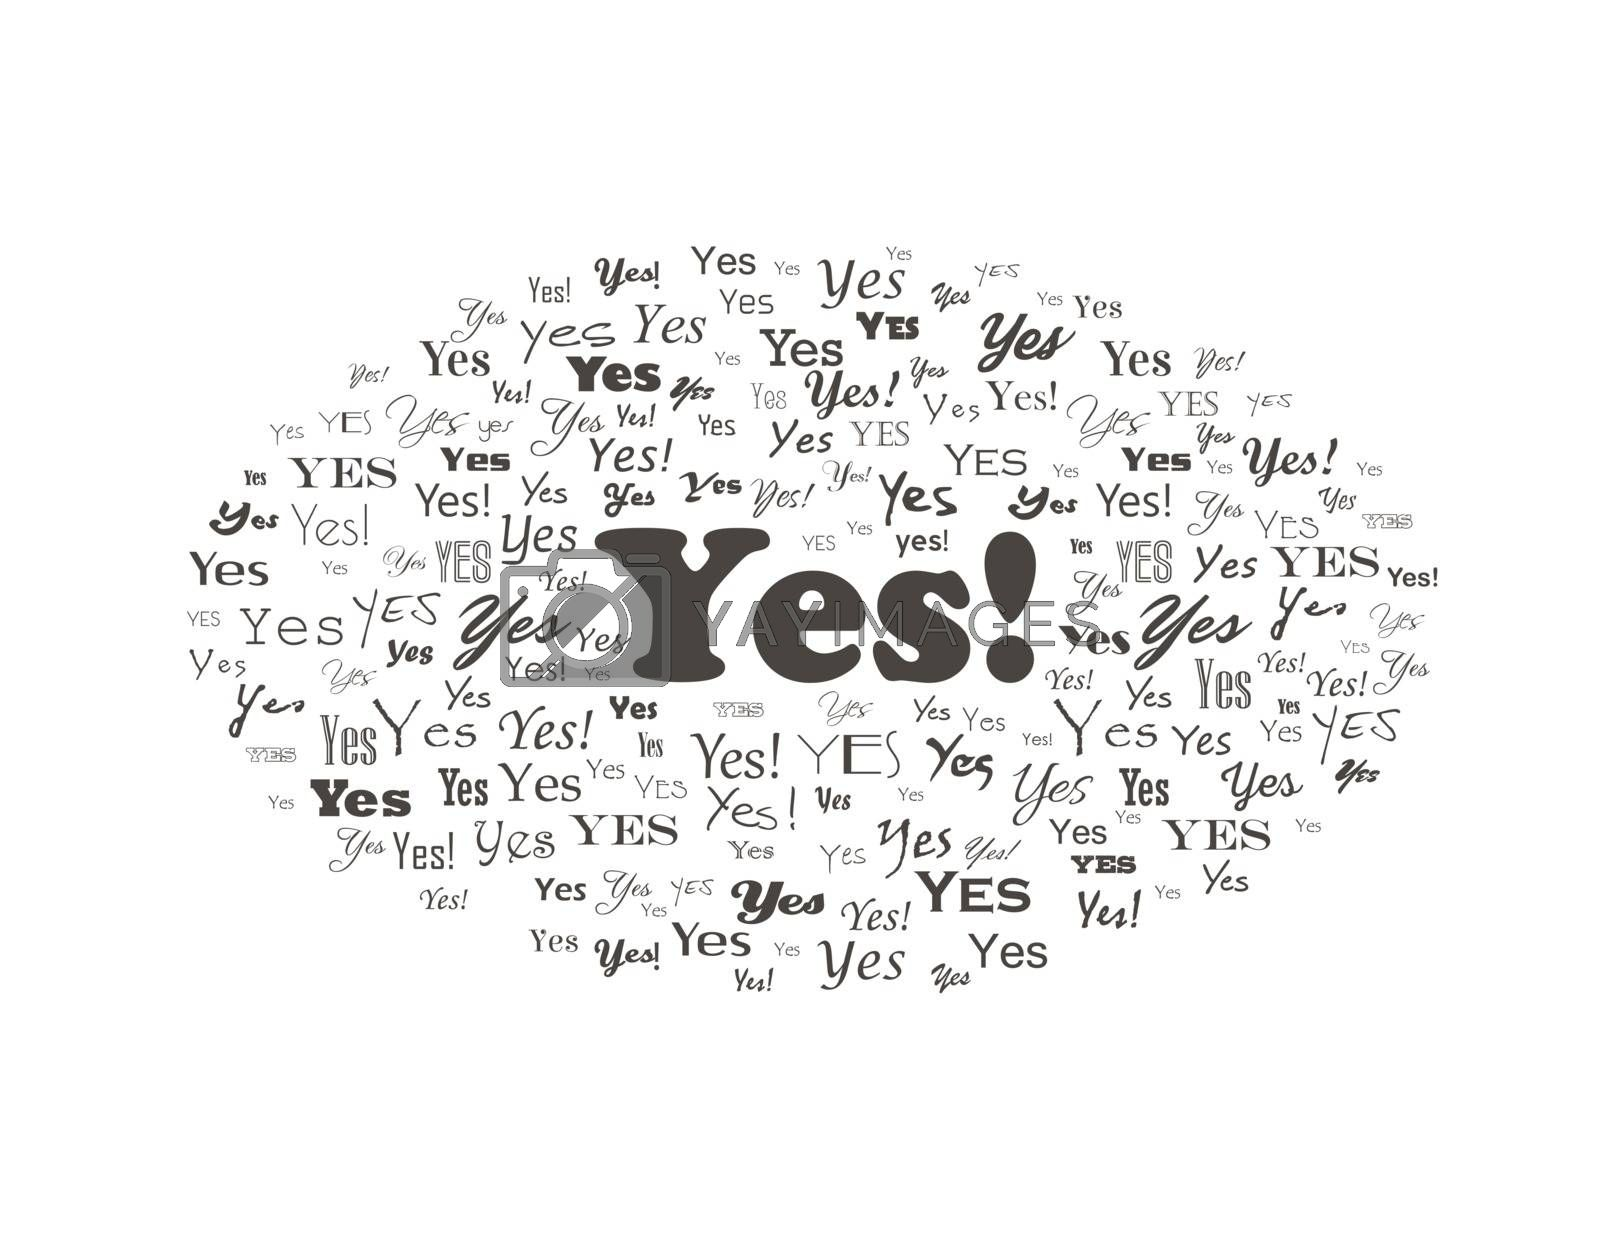 say yes. positive reply. Approve and agree word cloud. Vector text answer yes background. Lettering graphic illustration yes answer